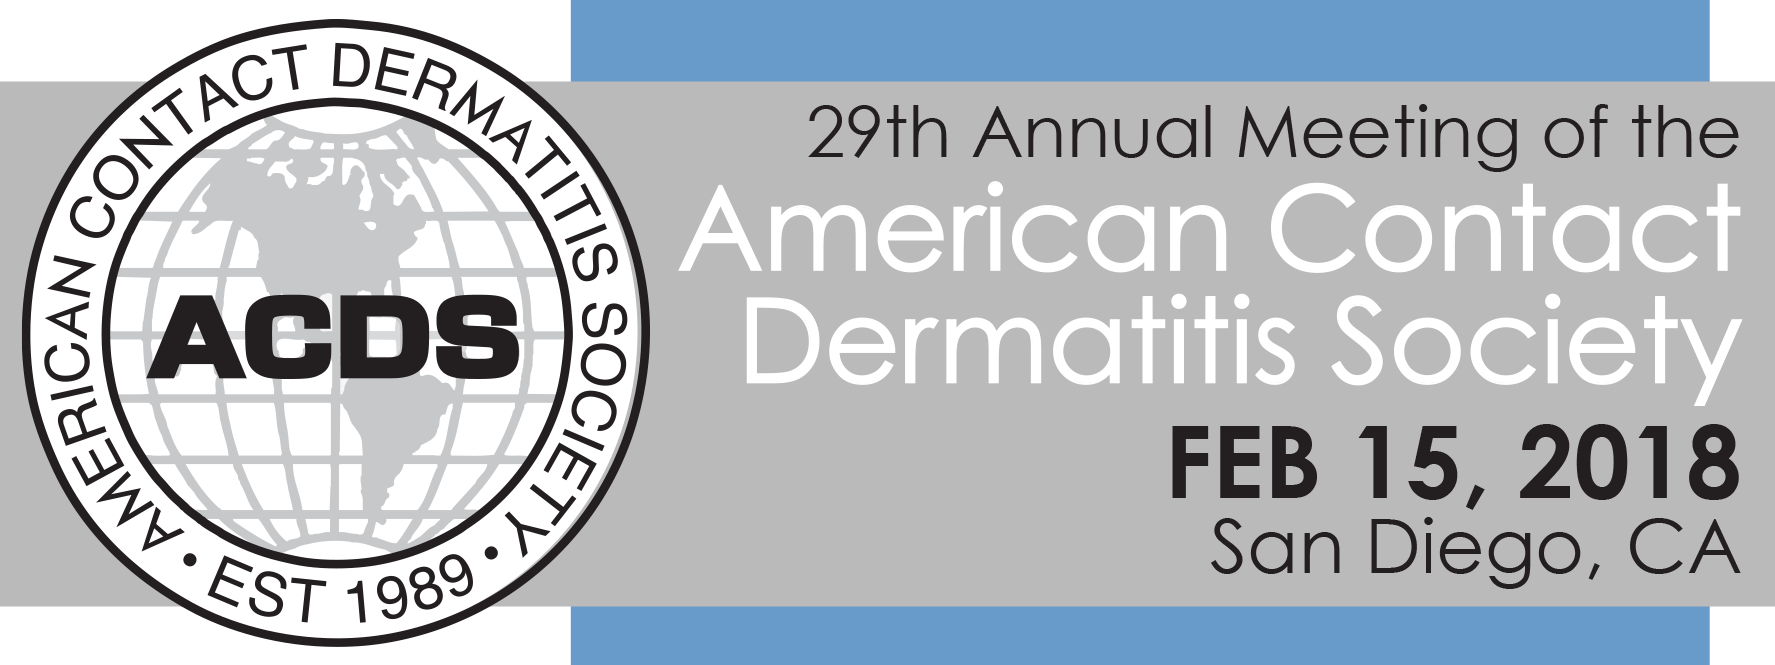 2018 The 29th Annual Meeting of the ACDS